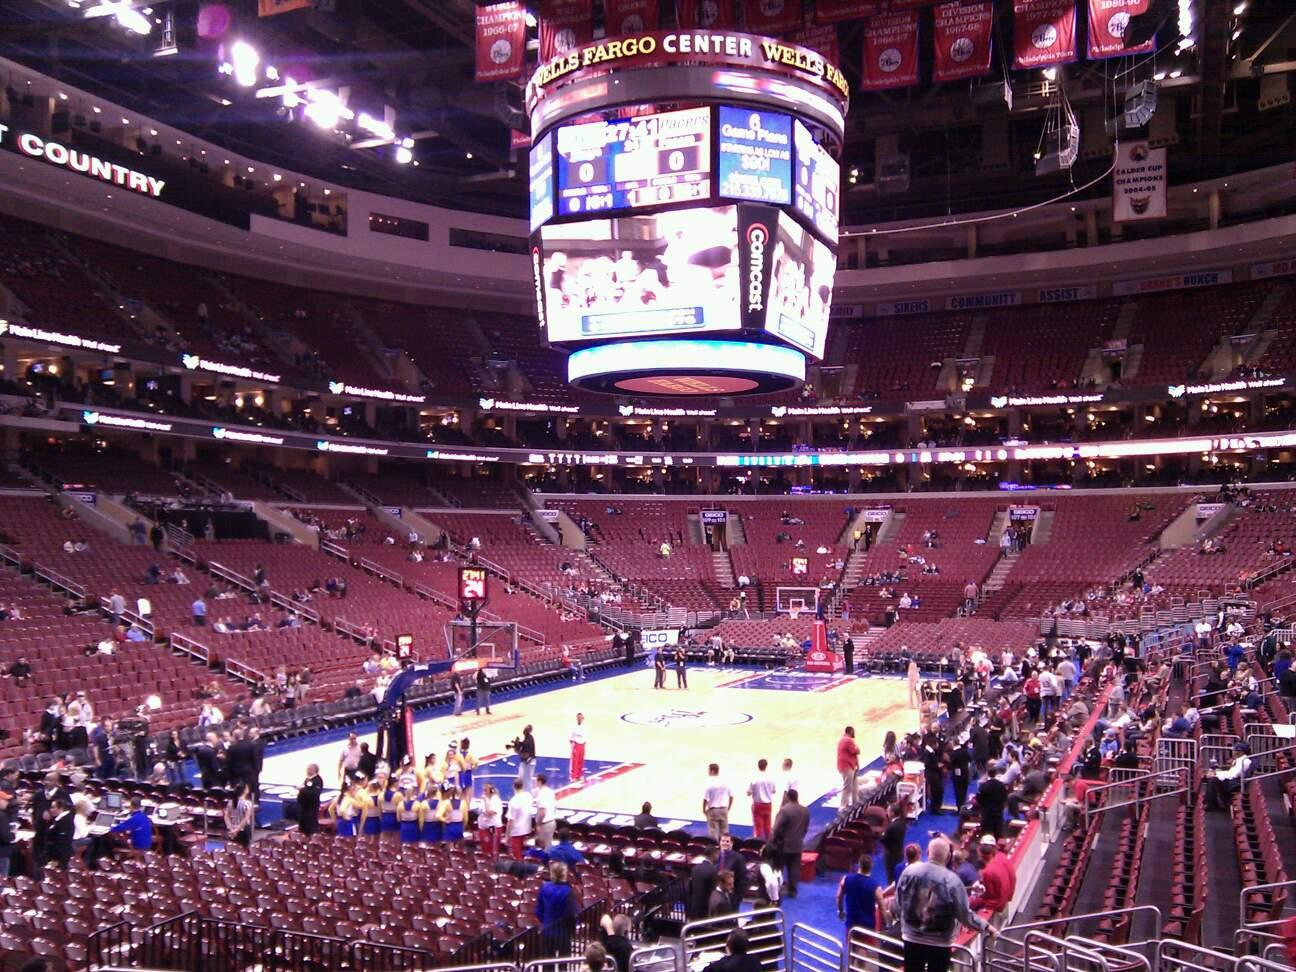 Wells Fargo Center Section 121 Row 15 Seat 4